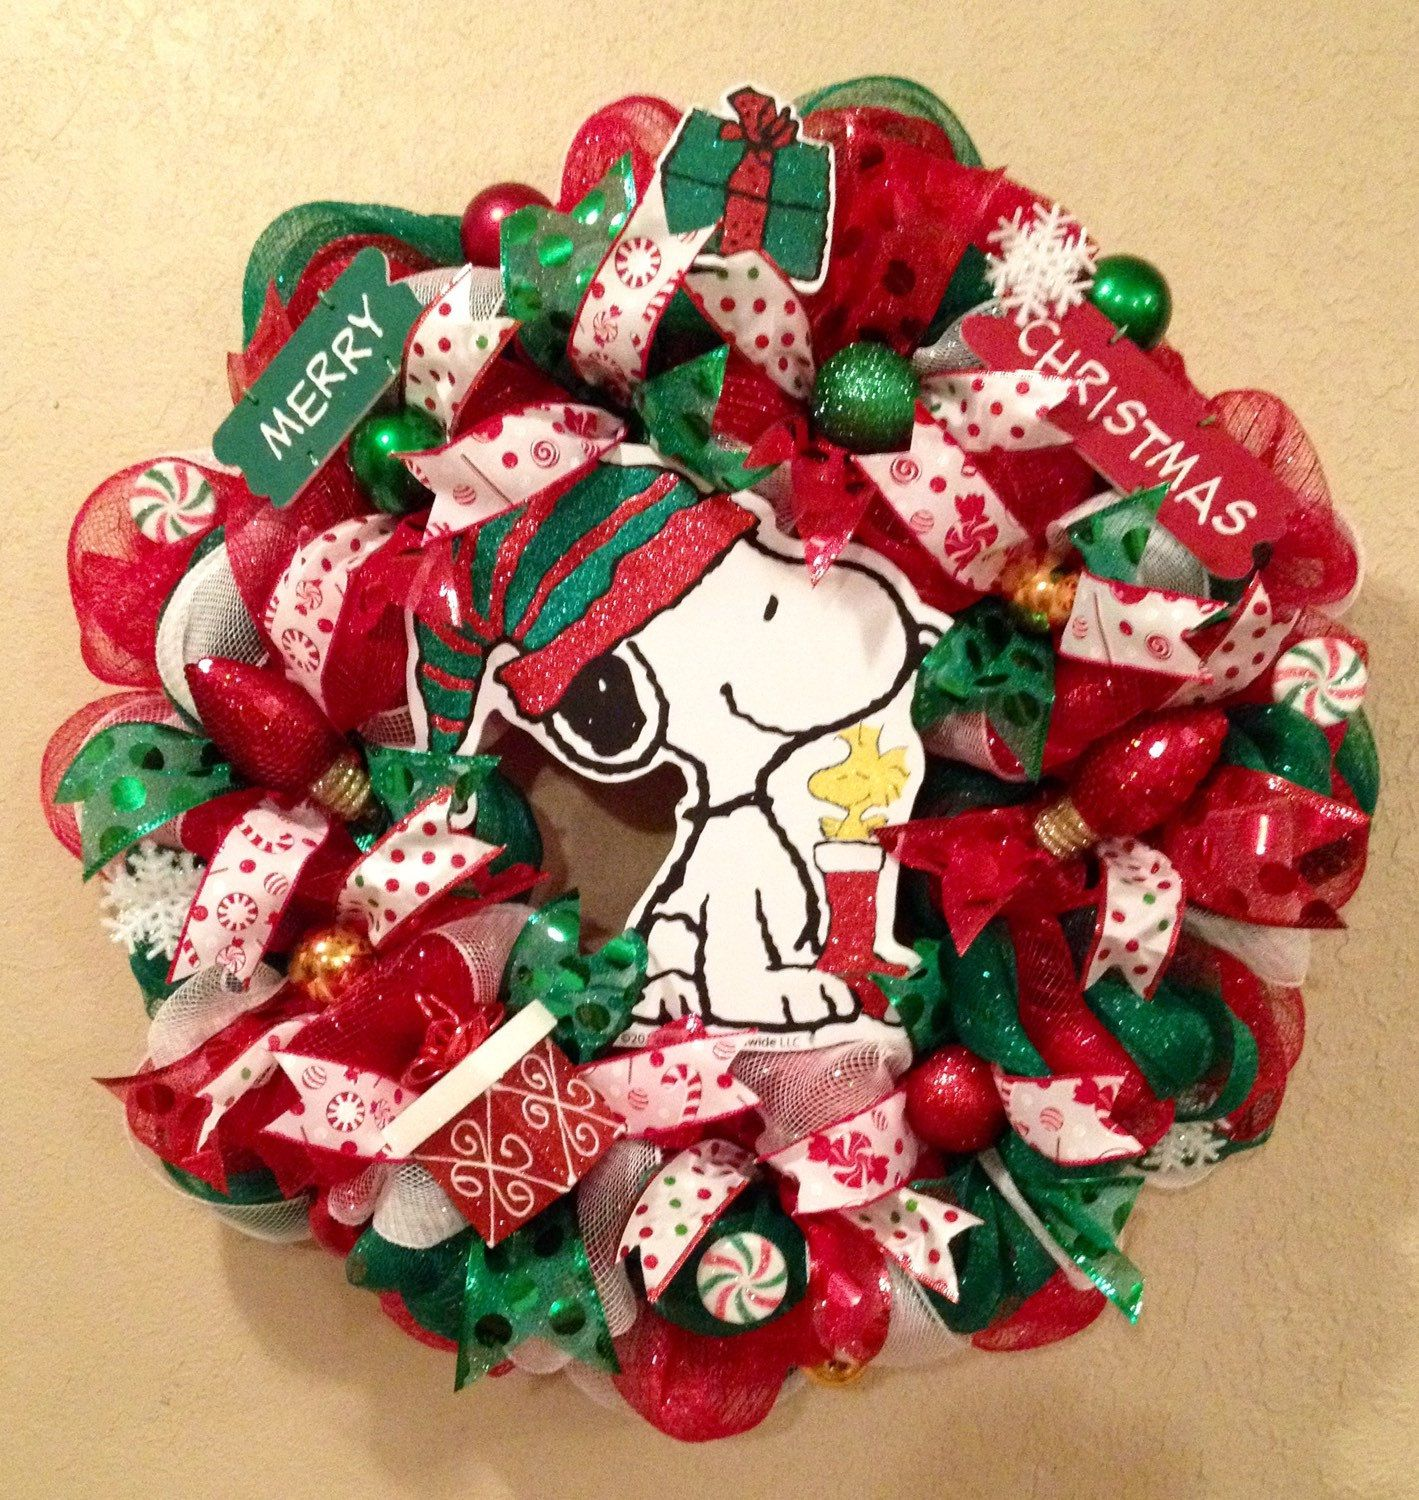 snoopy christmas wreath snoopy wreath snoopy decorations peanuts decor charlie brown decor snoopy and woodstock 7000 usd by wandndesigns - Snoopy Christmas Decorations